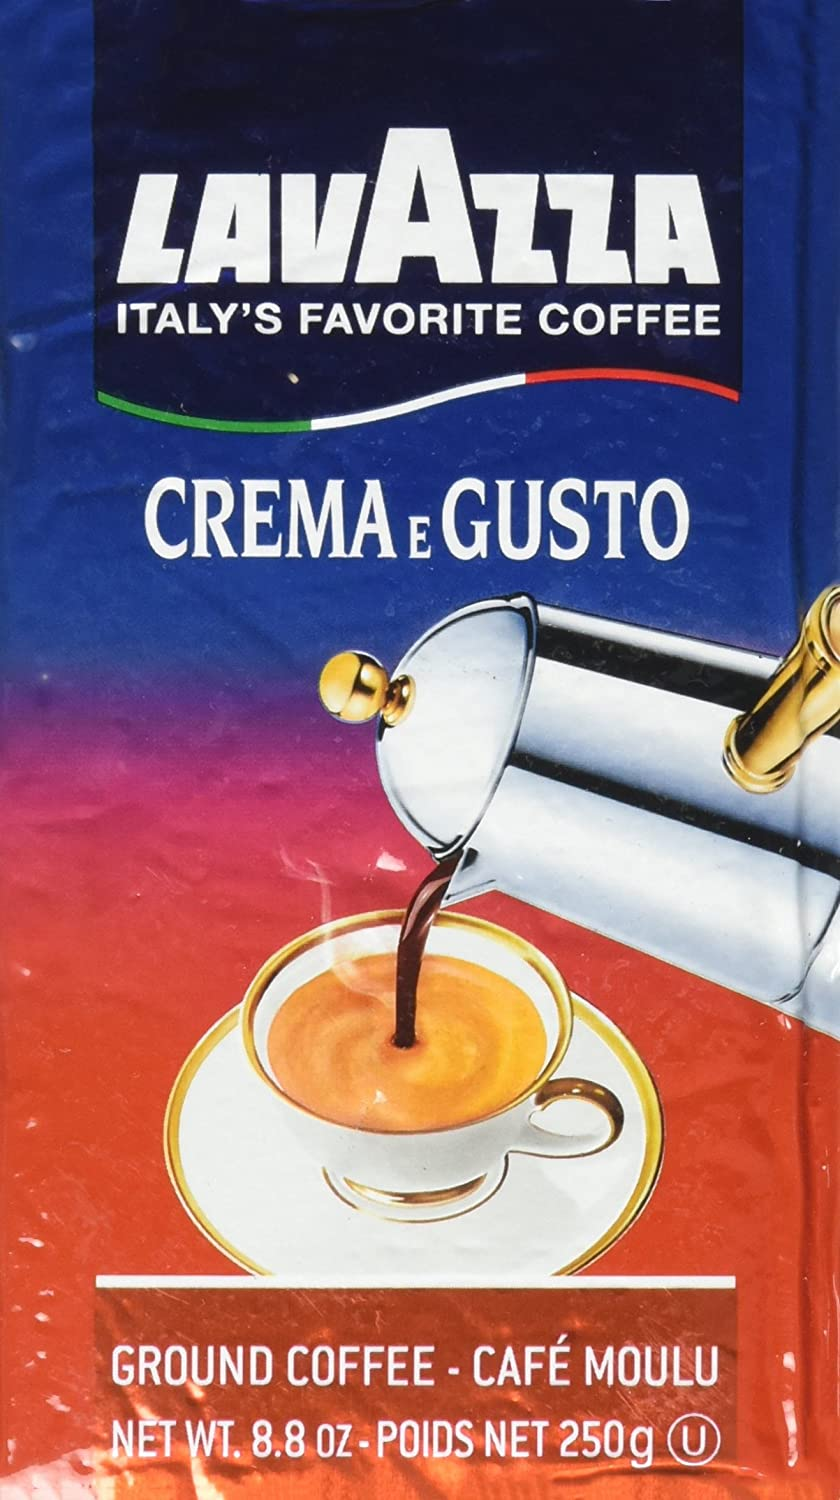 Lavazza Italian Espresso Crema Gusto Ground Coffee, 8.8 oz